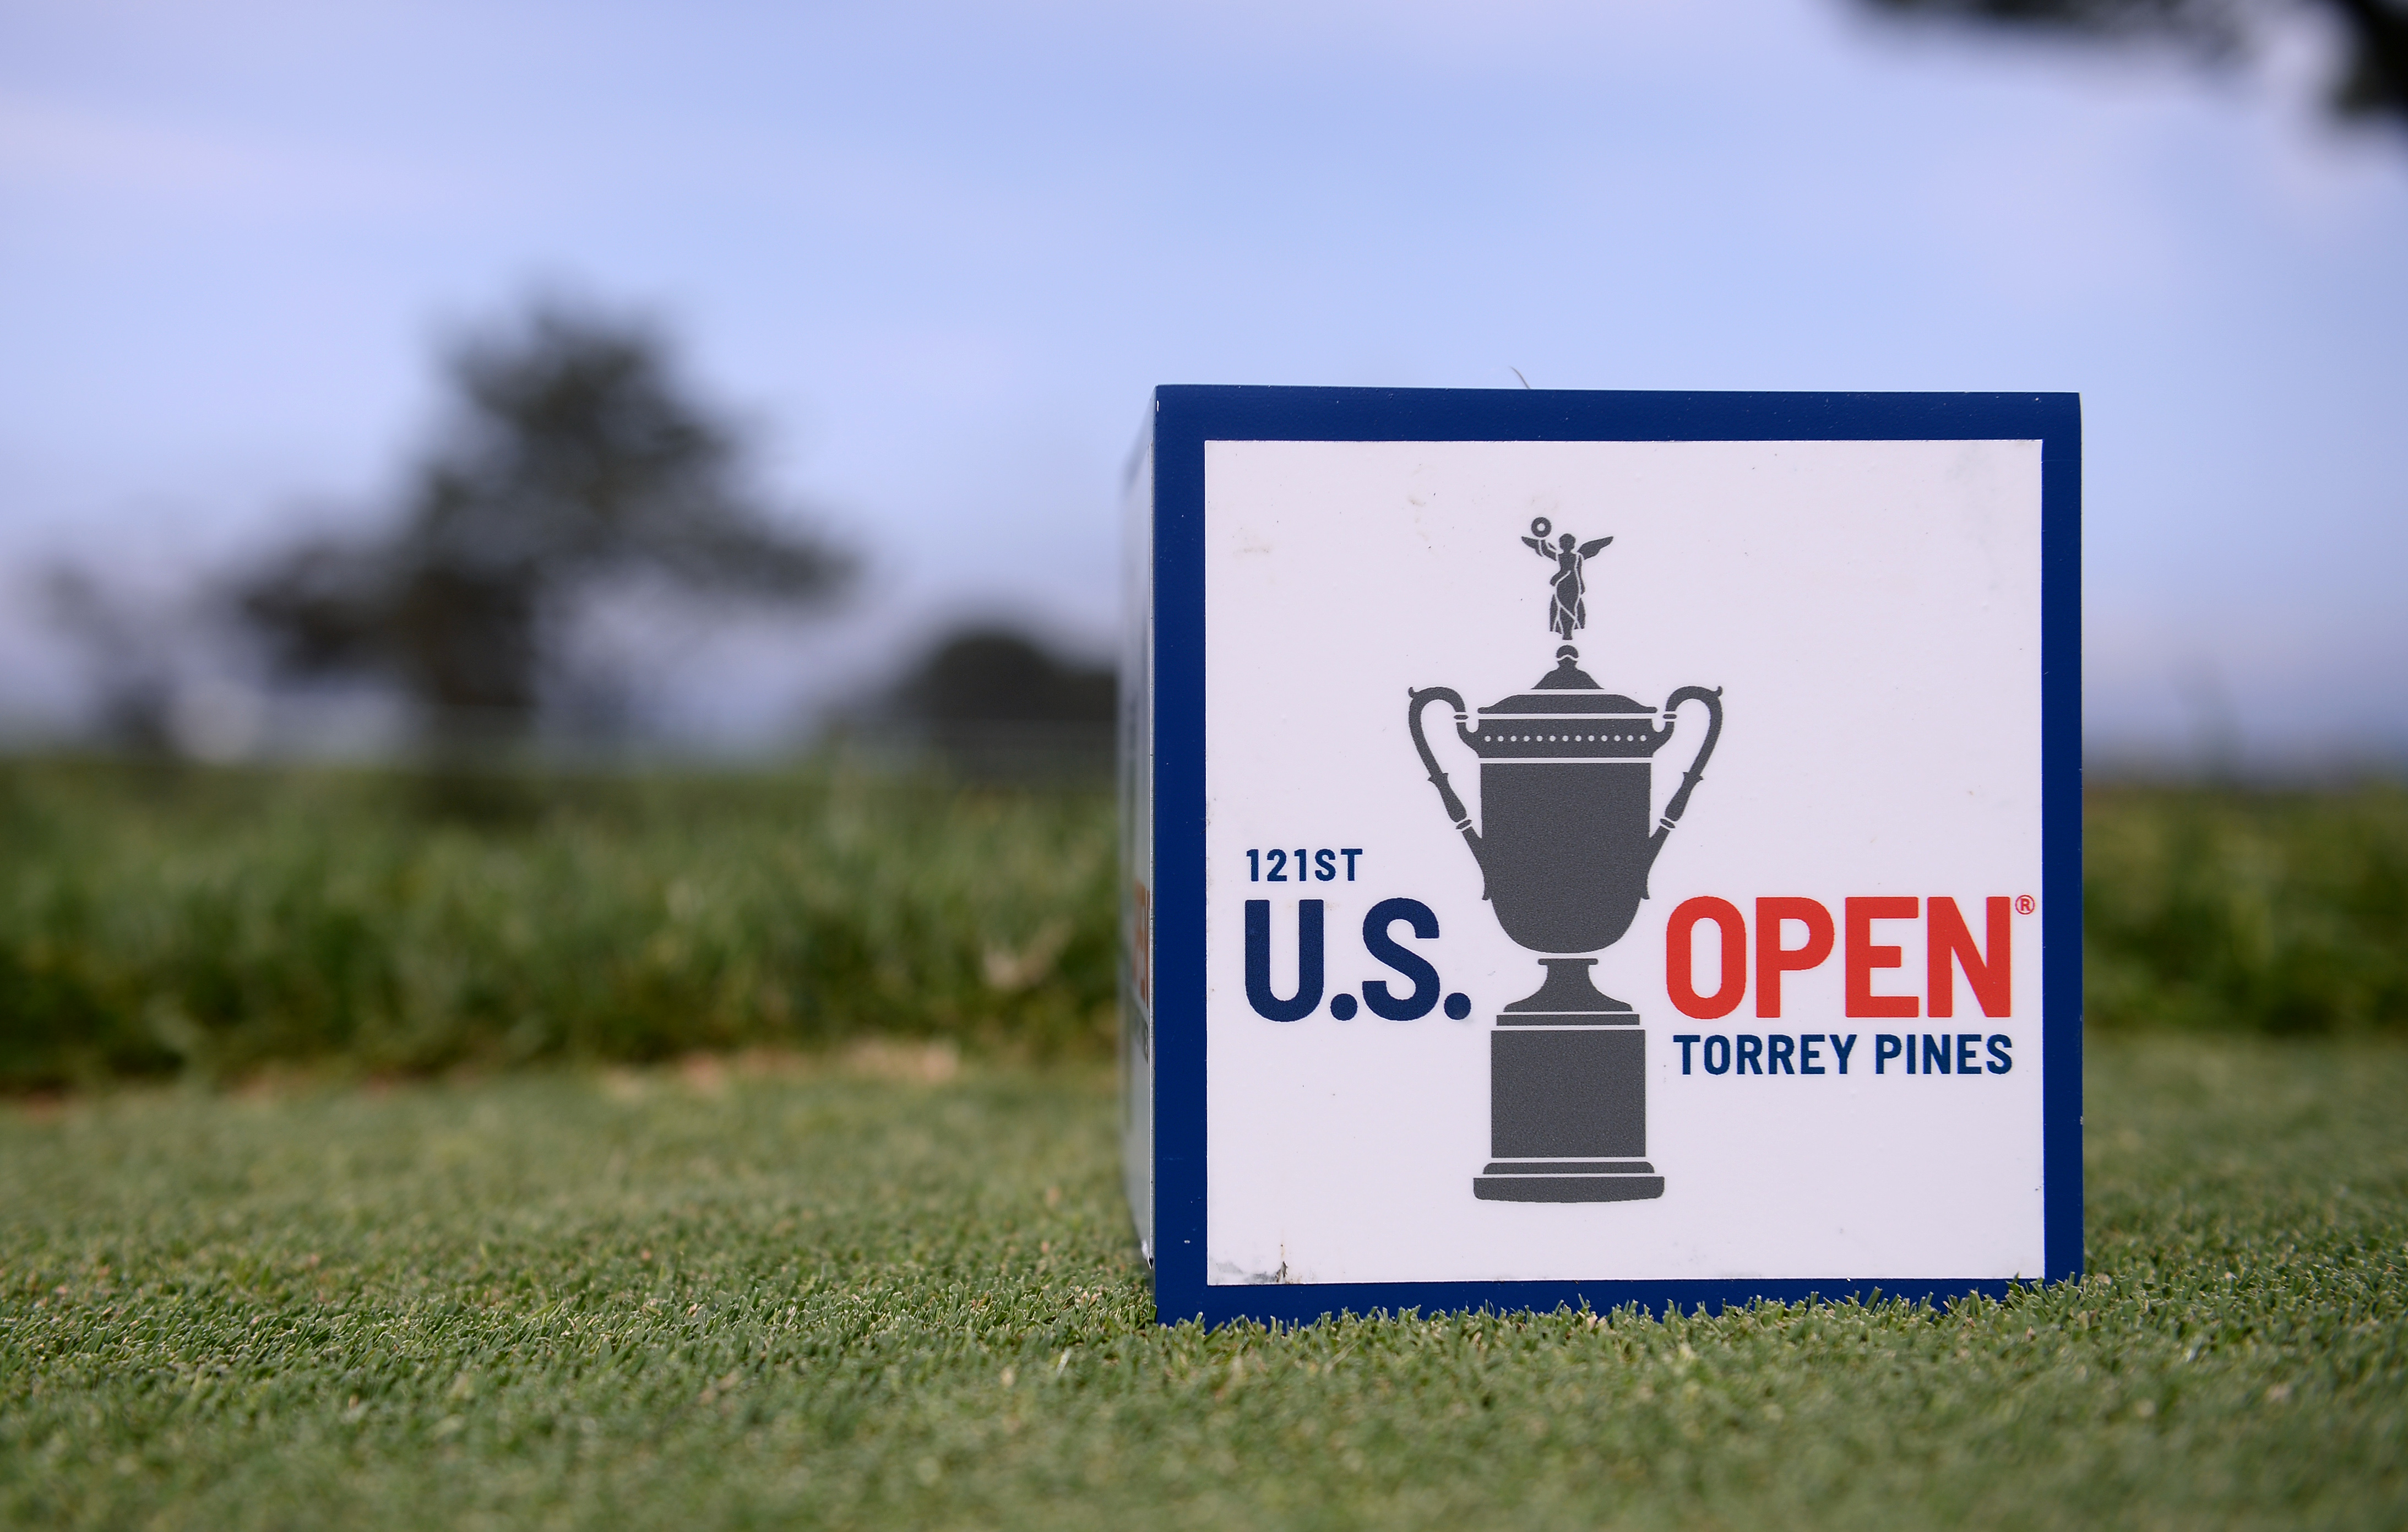 Jun 16, 2021; San Diego, California, USA; A detailed view of a tee box marker during a practice round of the U.S. Open golf tournament at Torrey Pines. Mandatory Credit: Orlando Ramirez-USA TODAY Sports